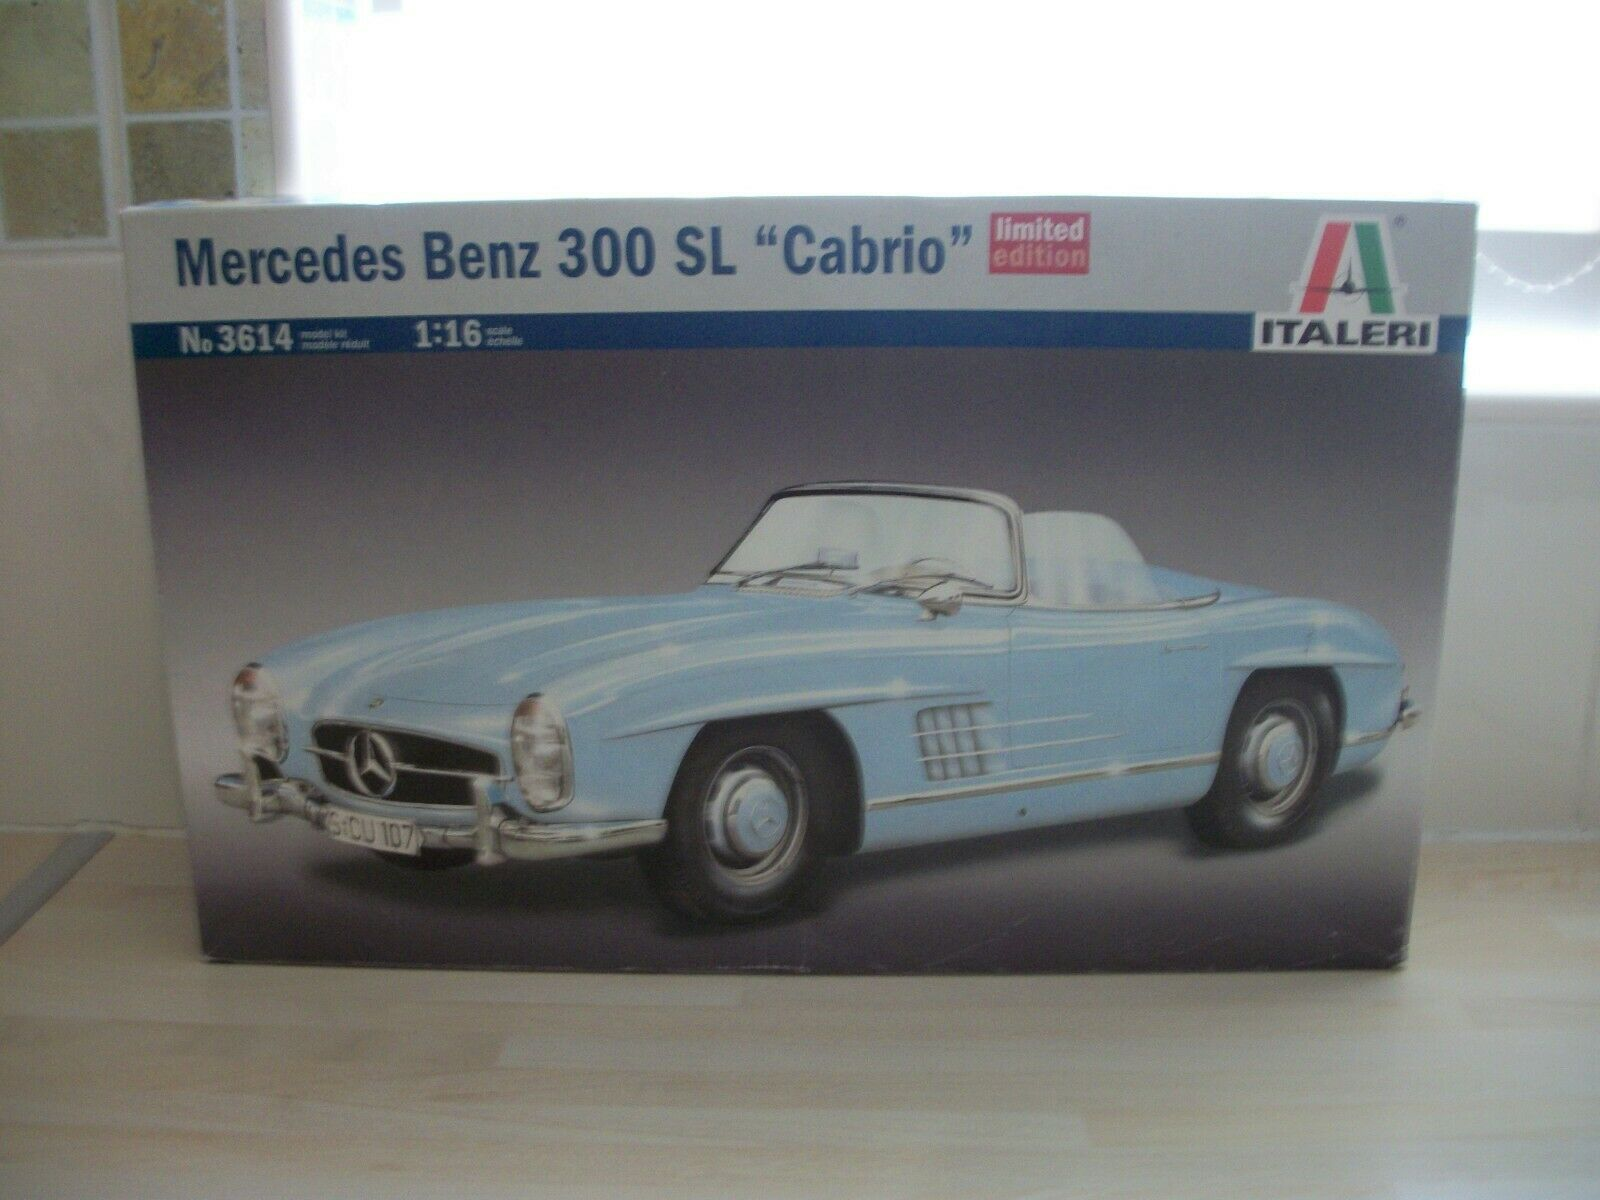 Italeri 3614 1 16 Scale Mercedes Benz 300 SL Cabrio Model Kit (BNIB)